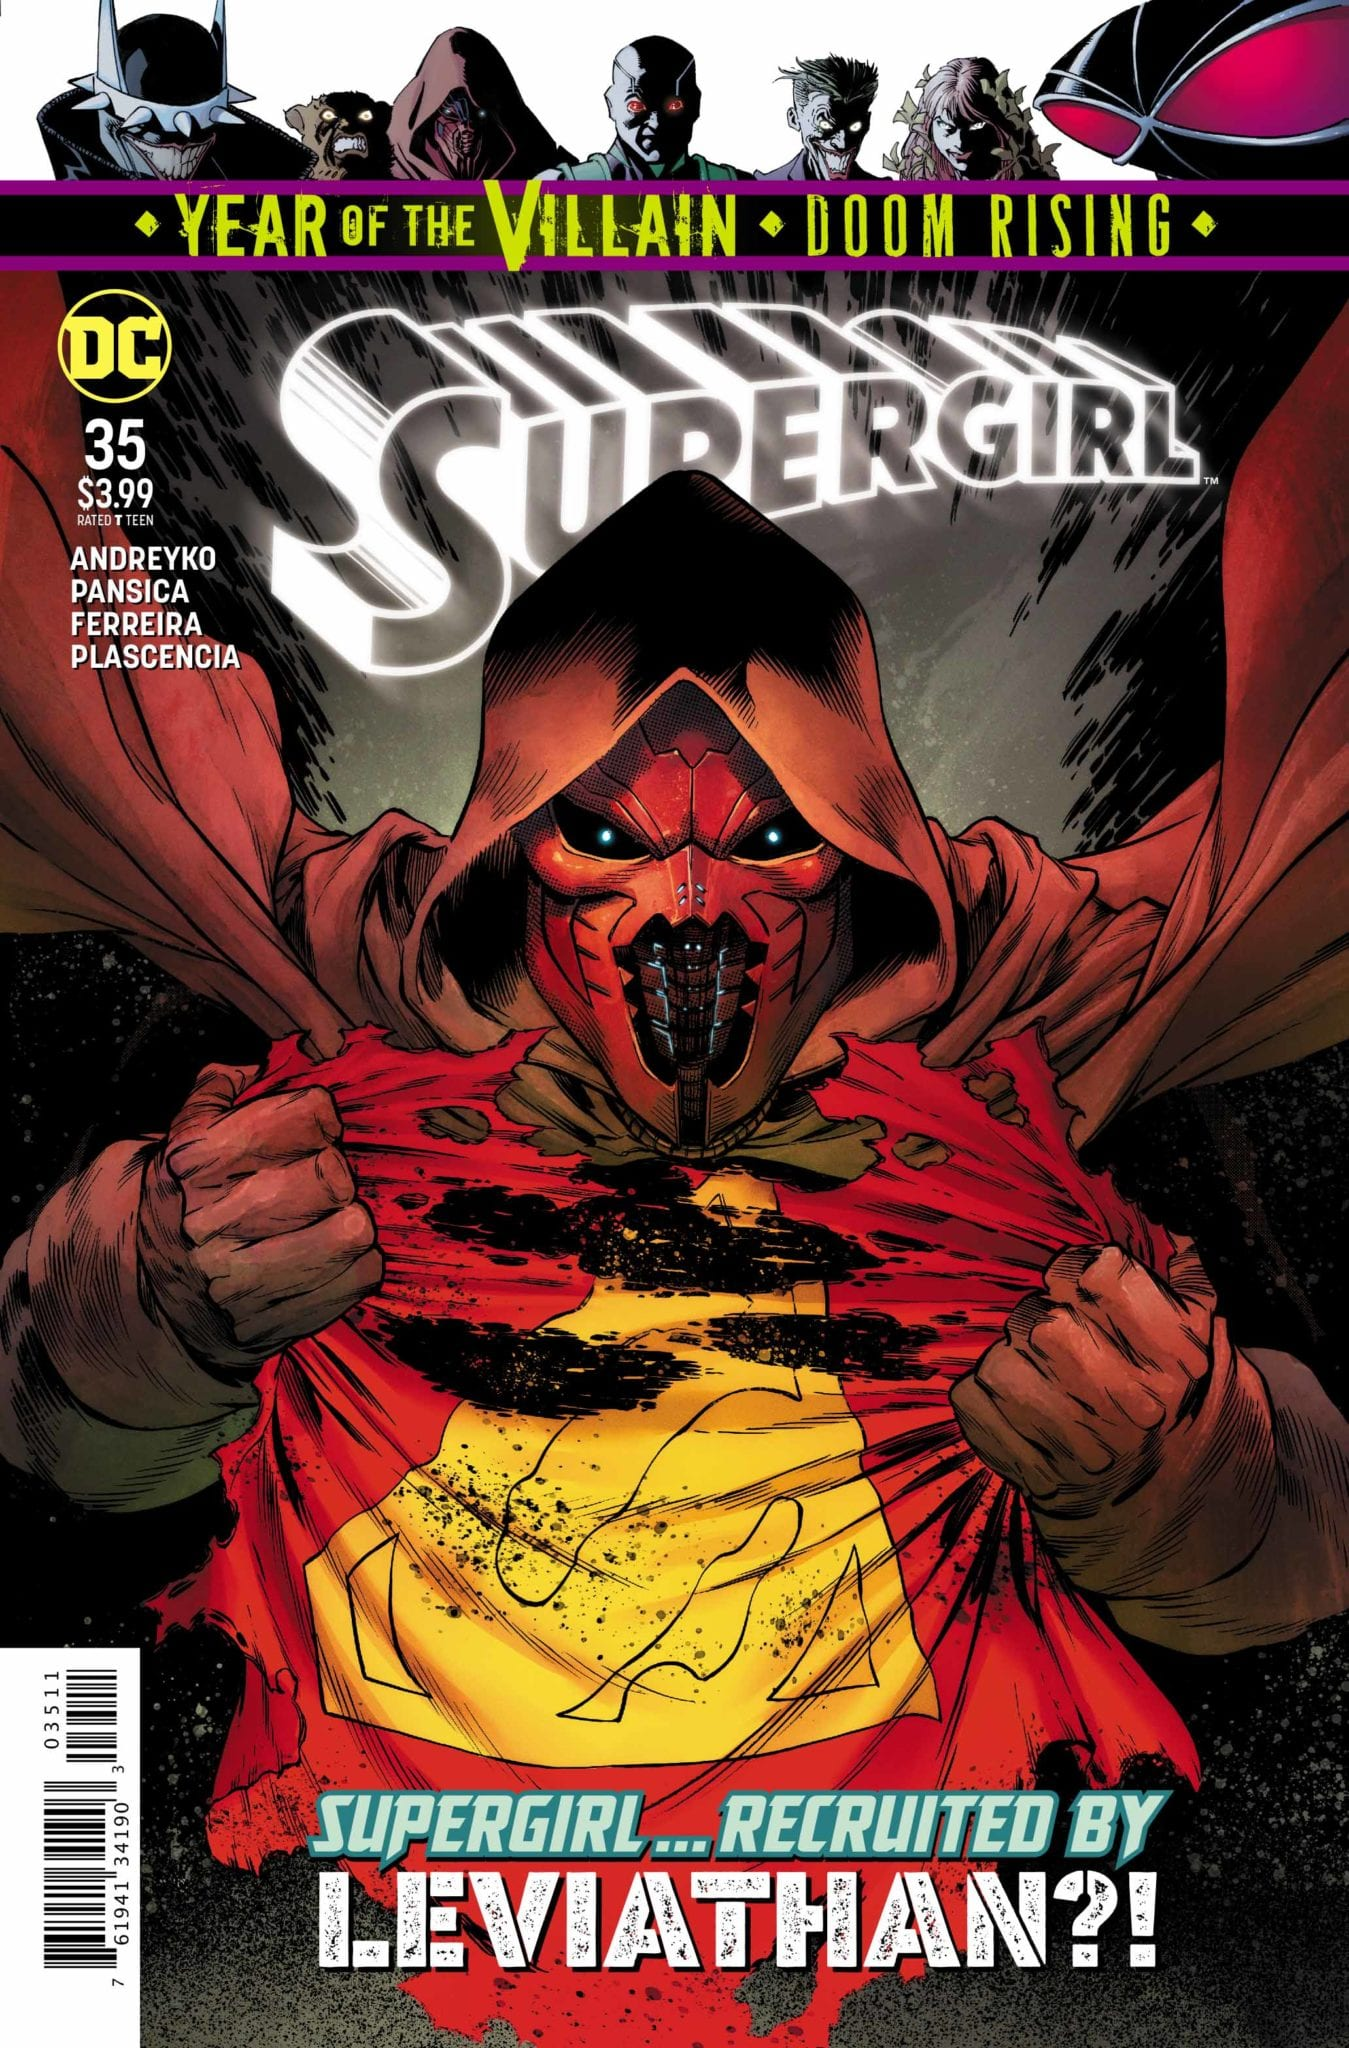 Exclusive DC Comics Preview: SUPERGIRL #35